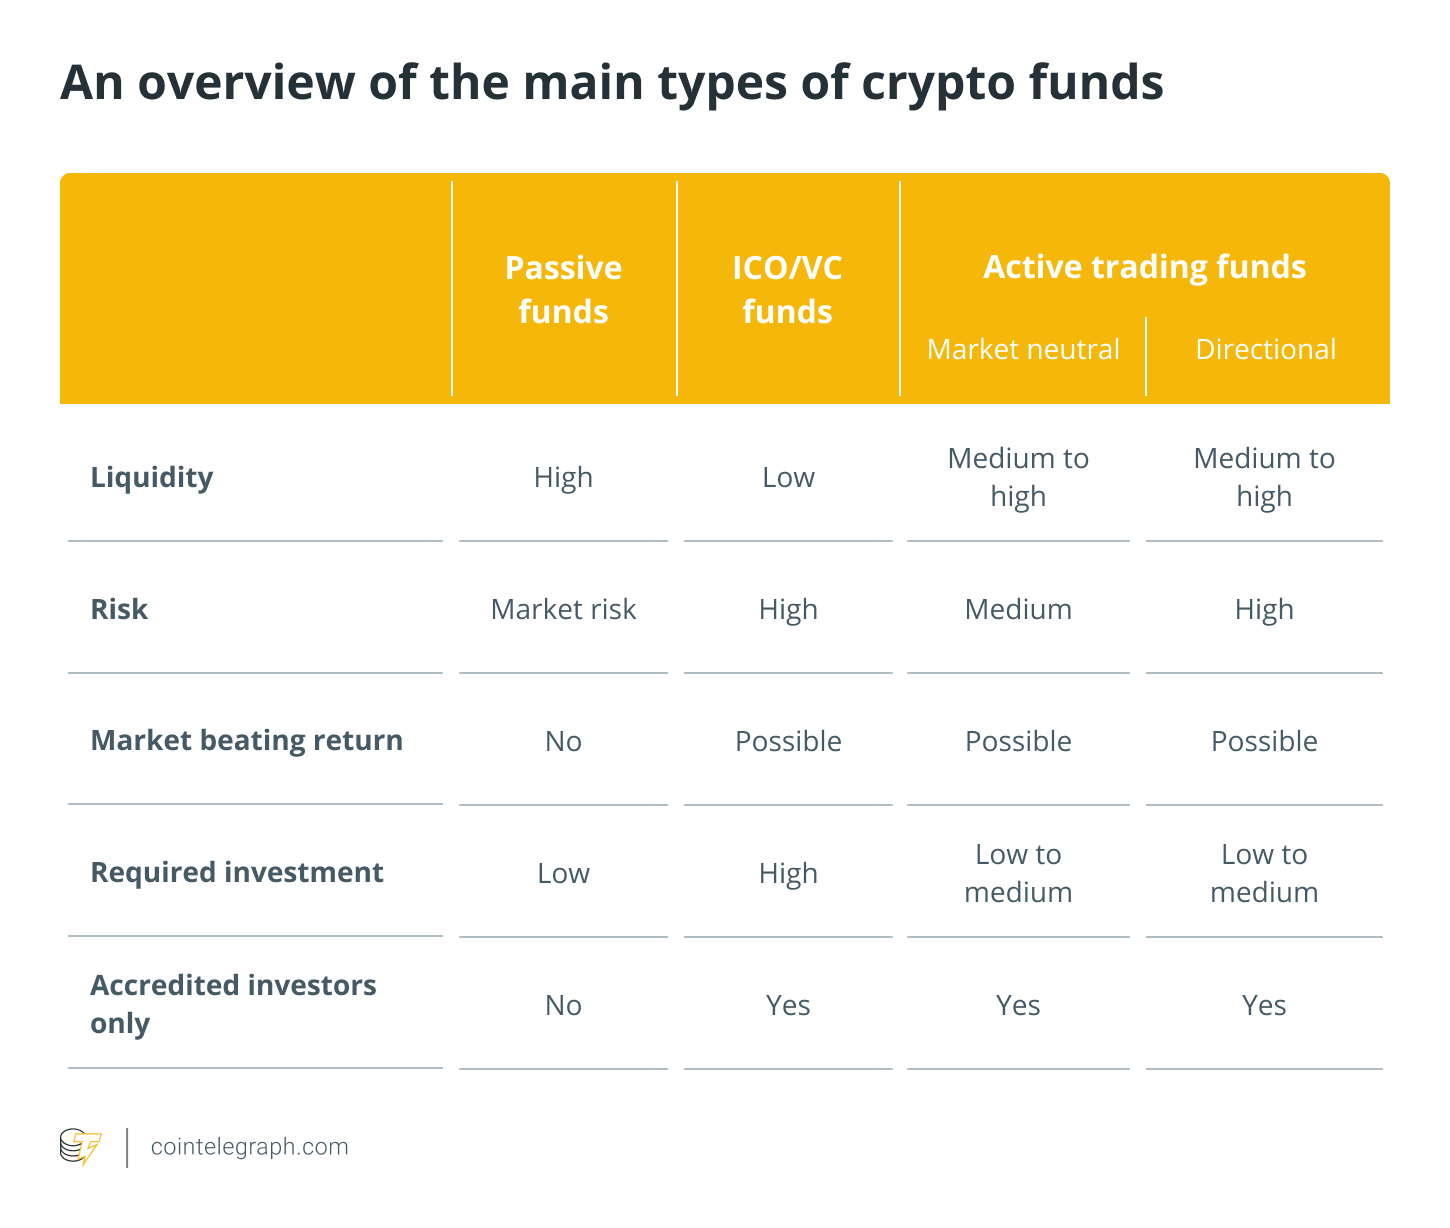 An overview of the main types of crypto funds